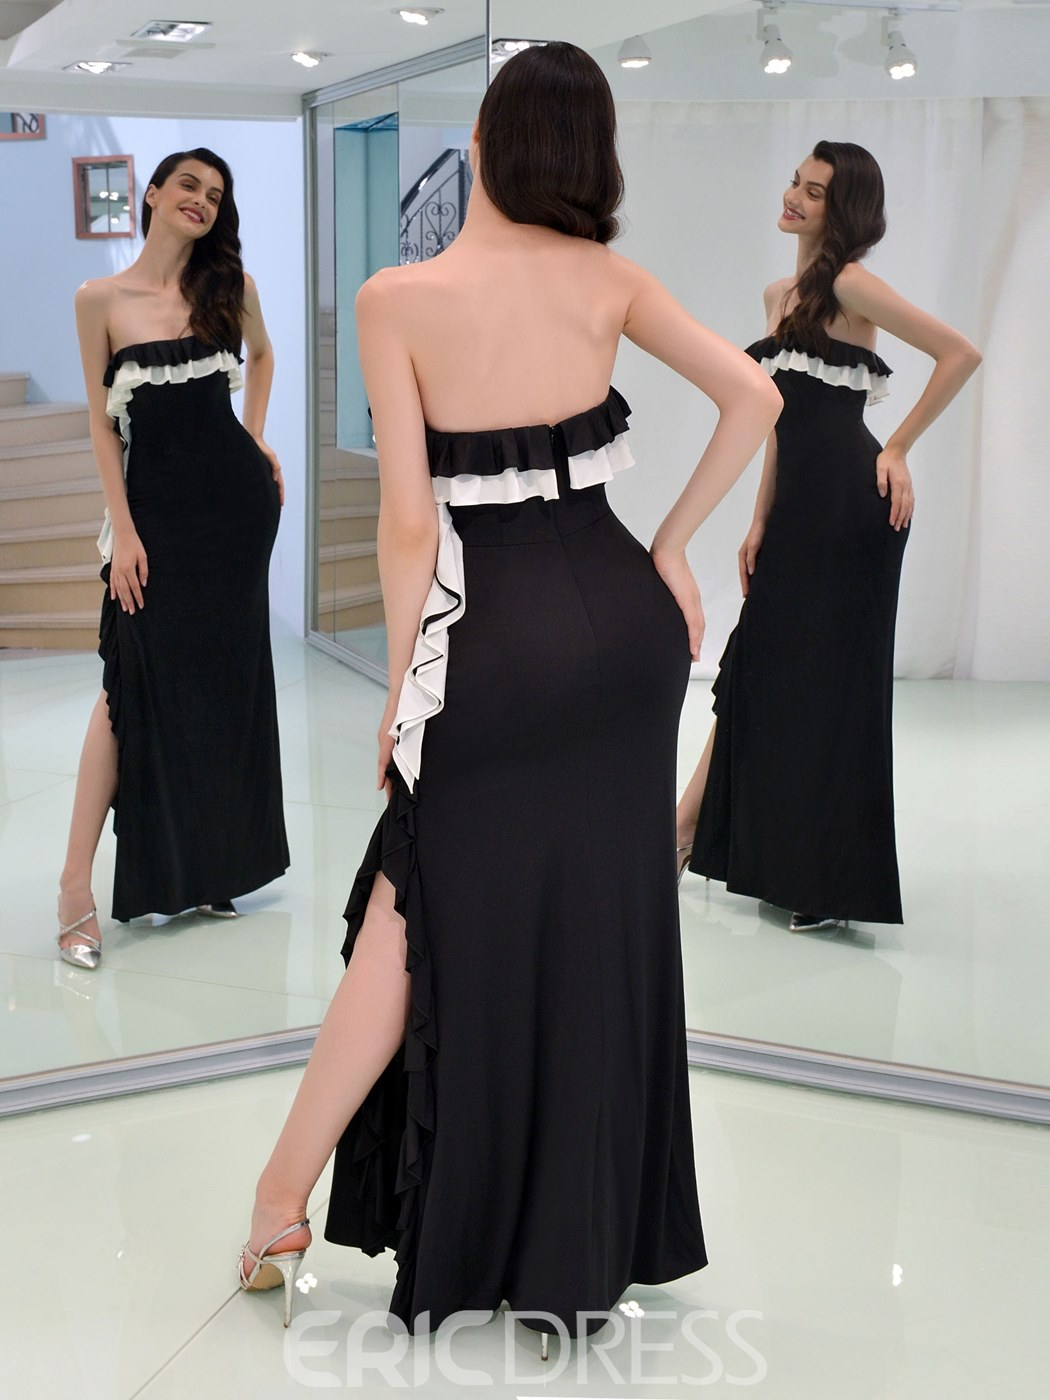 Ericdress Sheath Strapless Black Prom Dress With Slit